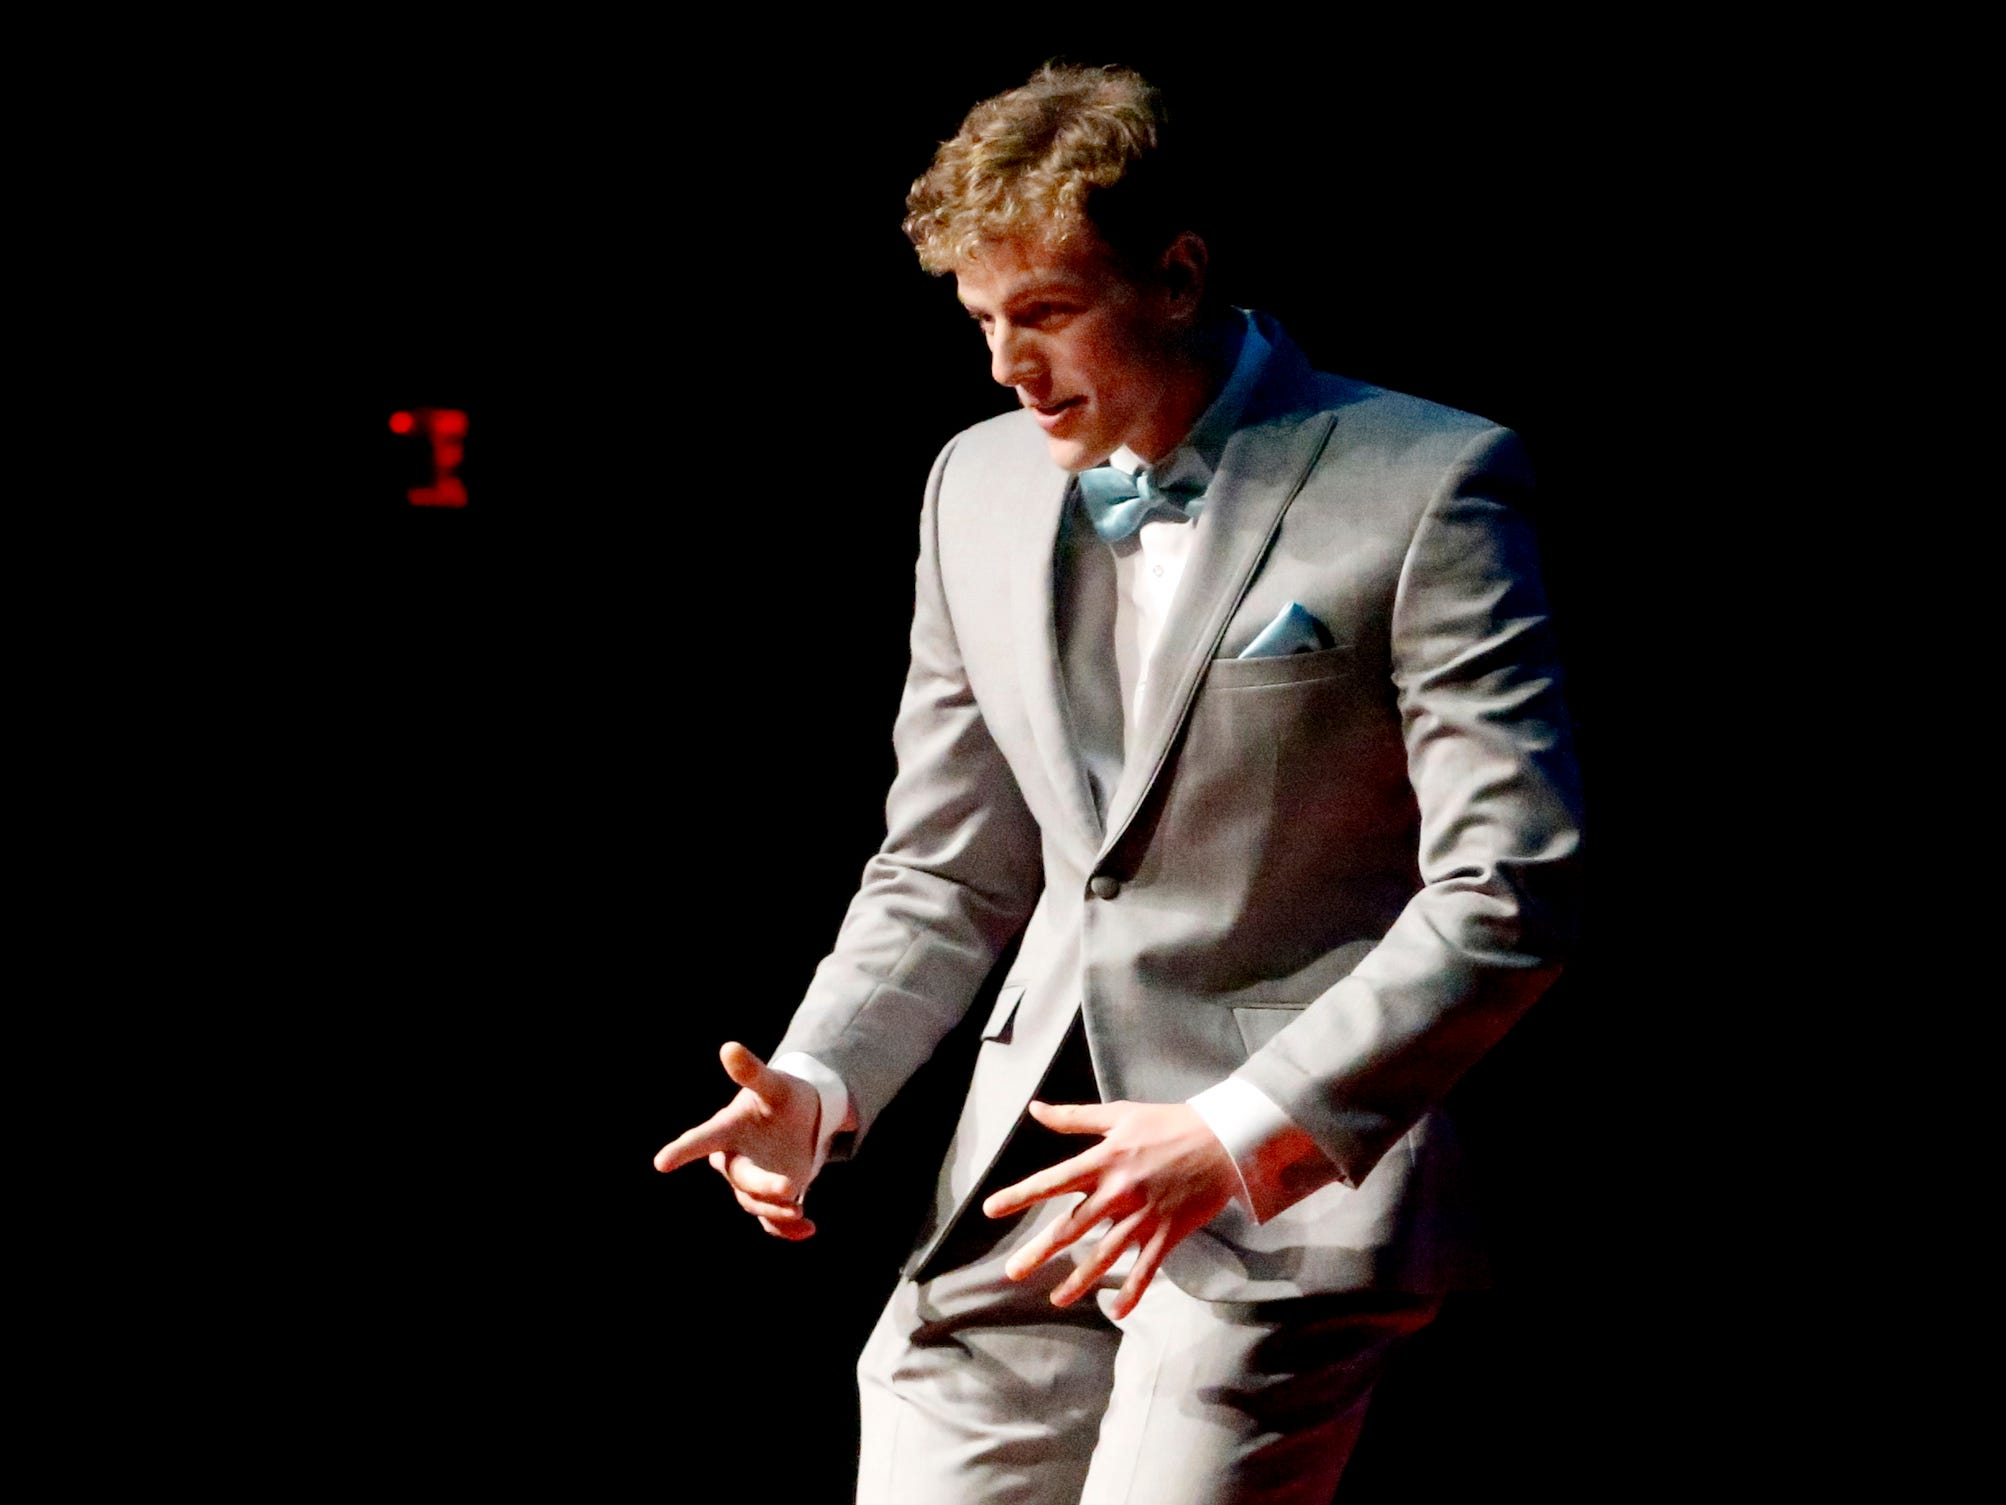 Patrick Moss dances at the end of the runway as he participates in the Siegel Prom Fashion show on Thursday, Feb. 14, 2019.